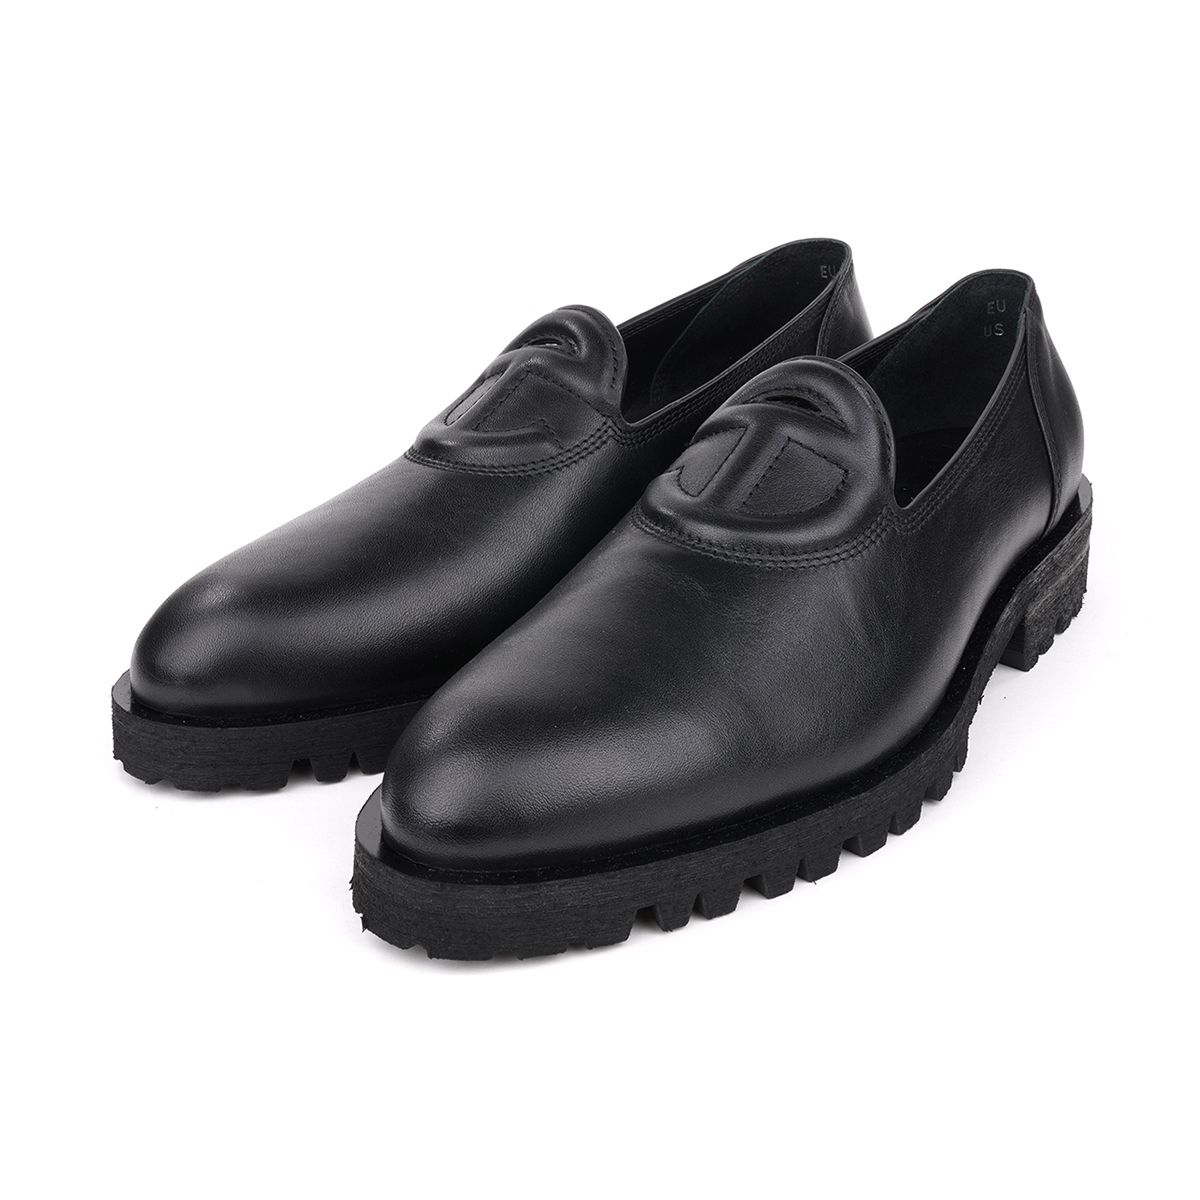 TELFAR LOAFERS TELFAR / 002 : BLACK